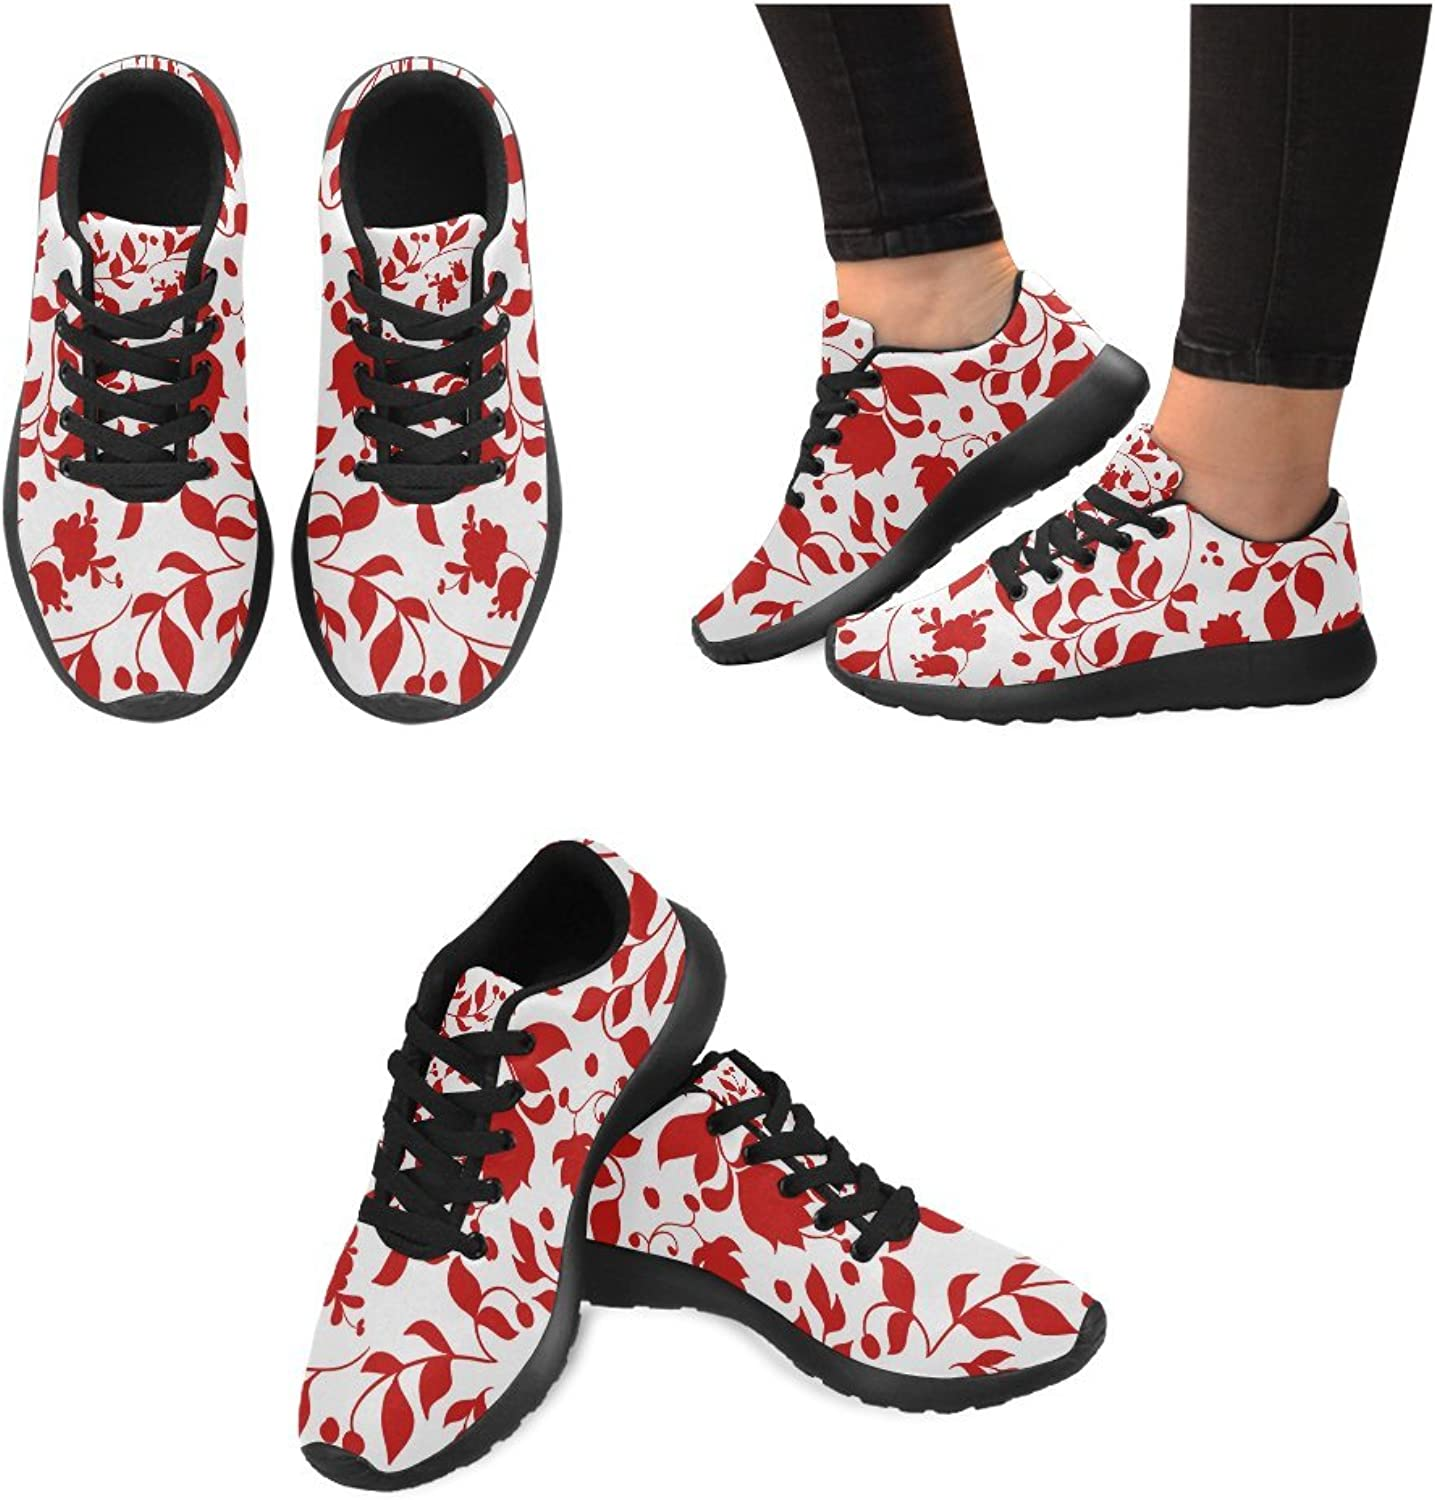 InterestPrint red pink Leaves Floral Print on Women's Running shoes Casual Lightweight Athletic Sneakers US Size 6-15